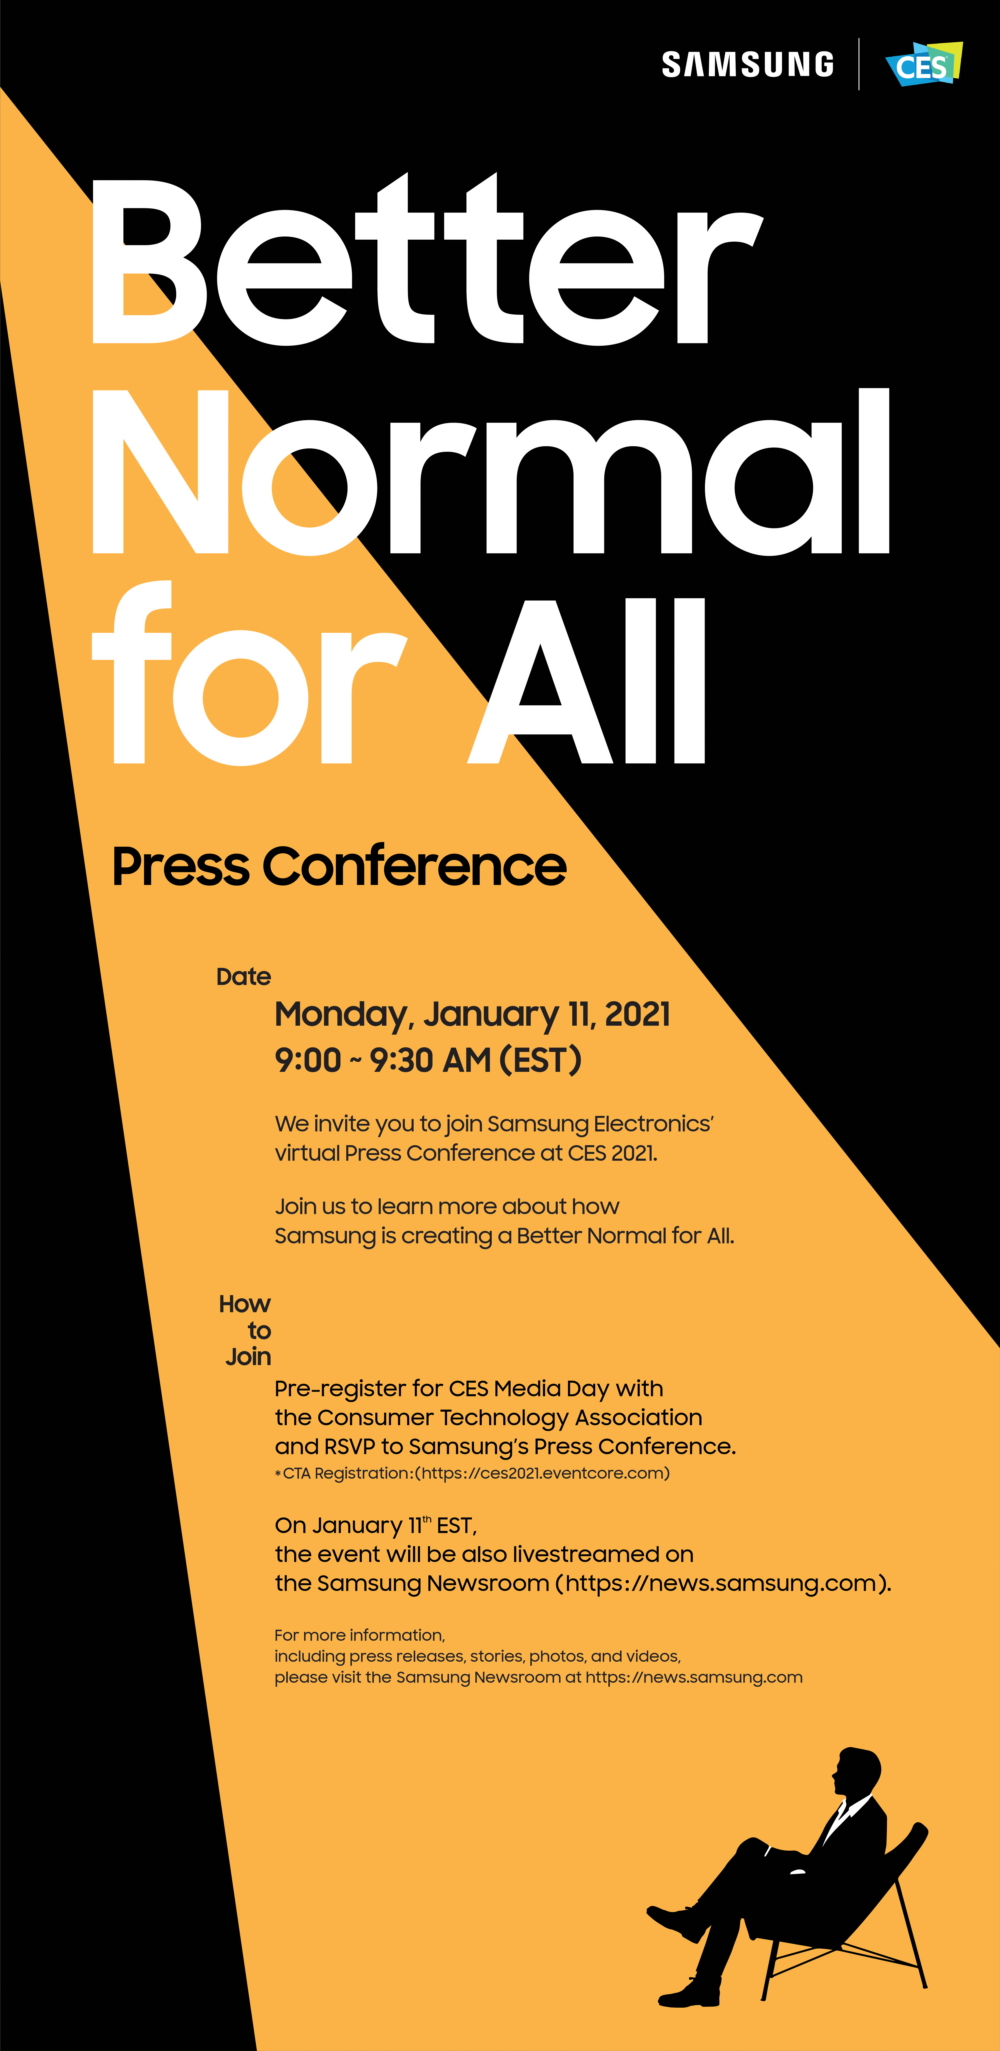 [Invitation] A 'Better Normal for All': Samsung's CES 2021 Press Conference - Image 1